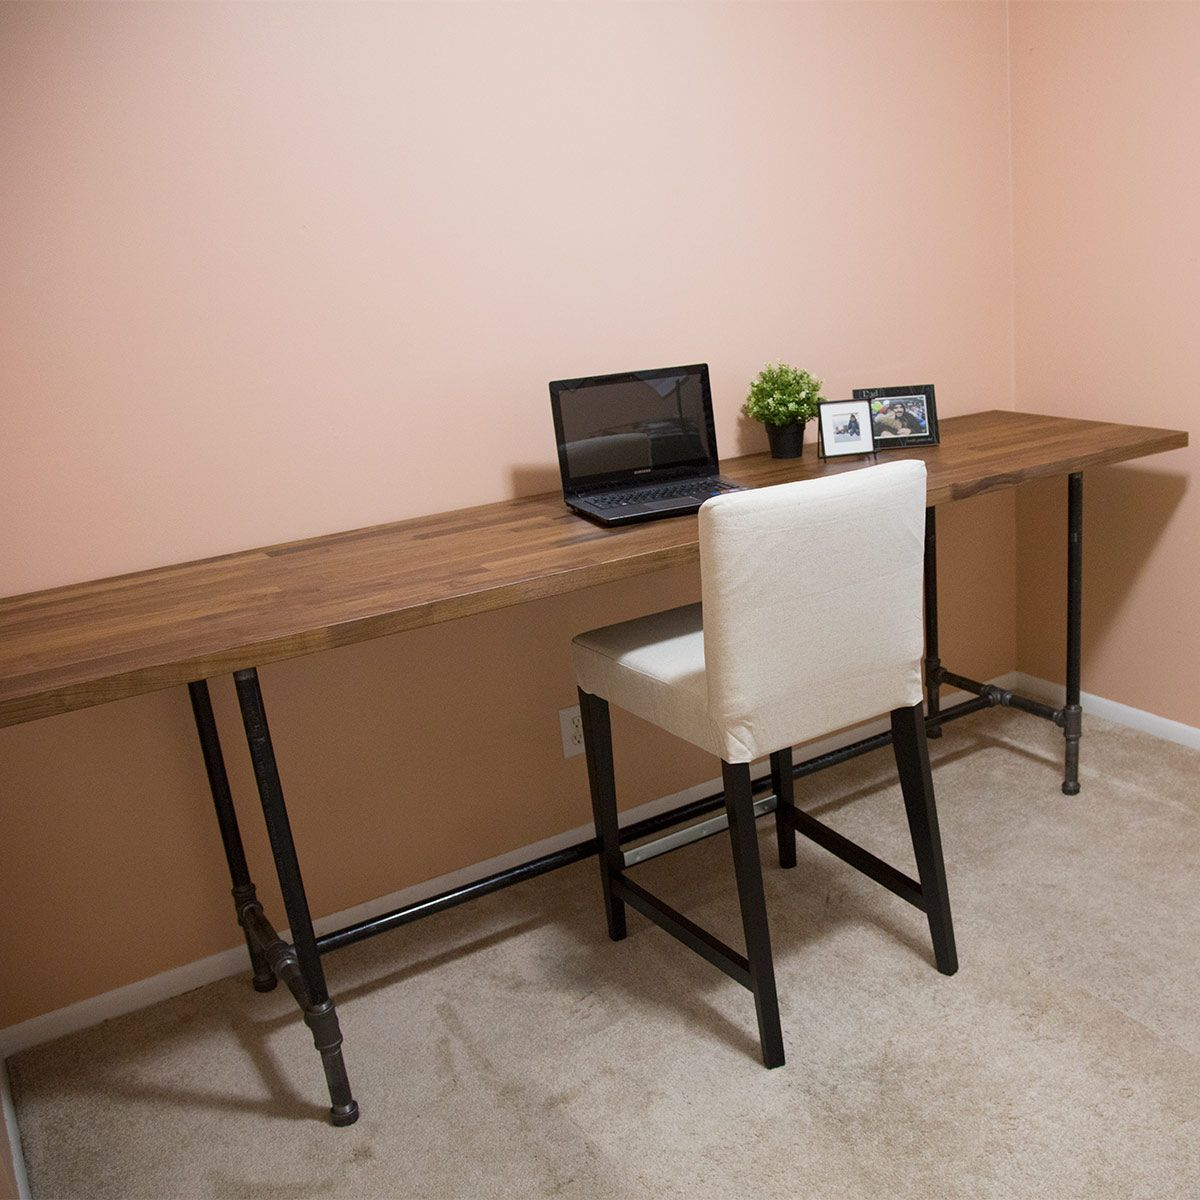 Office Chair Sinking Best For Hemorrhoids How To Build A Pipe Desk Homestead Helps Pinterest